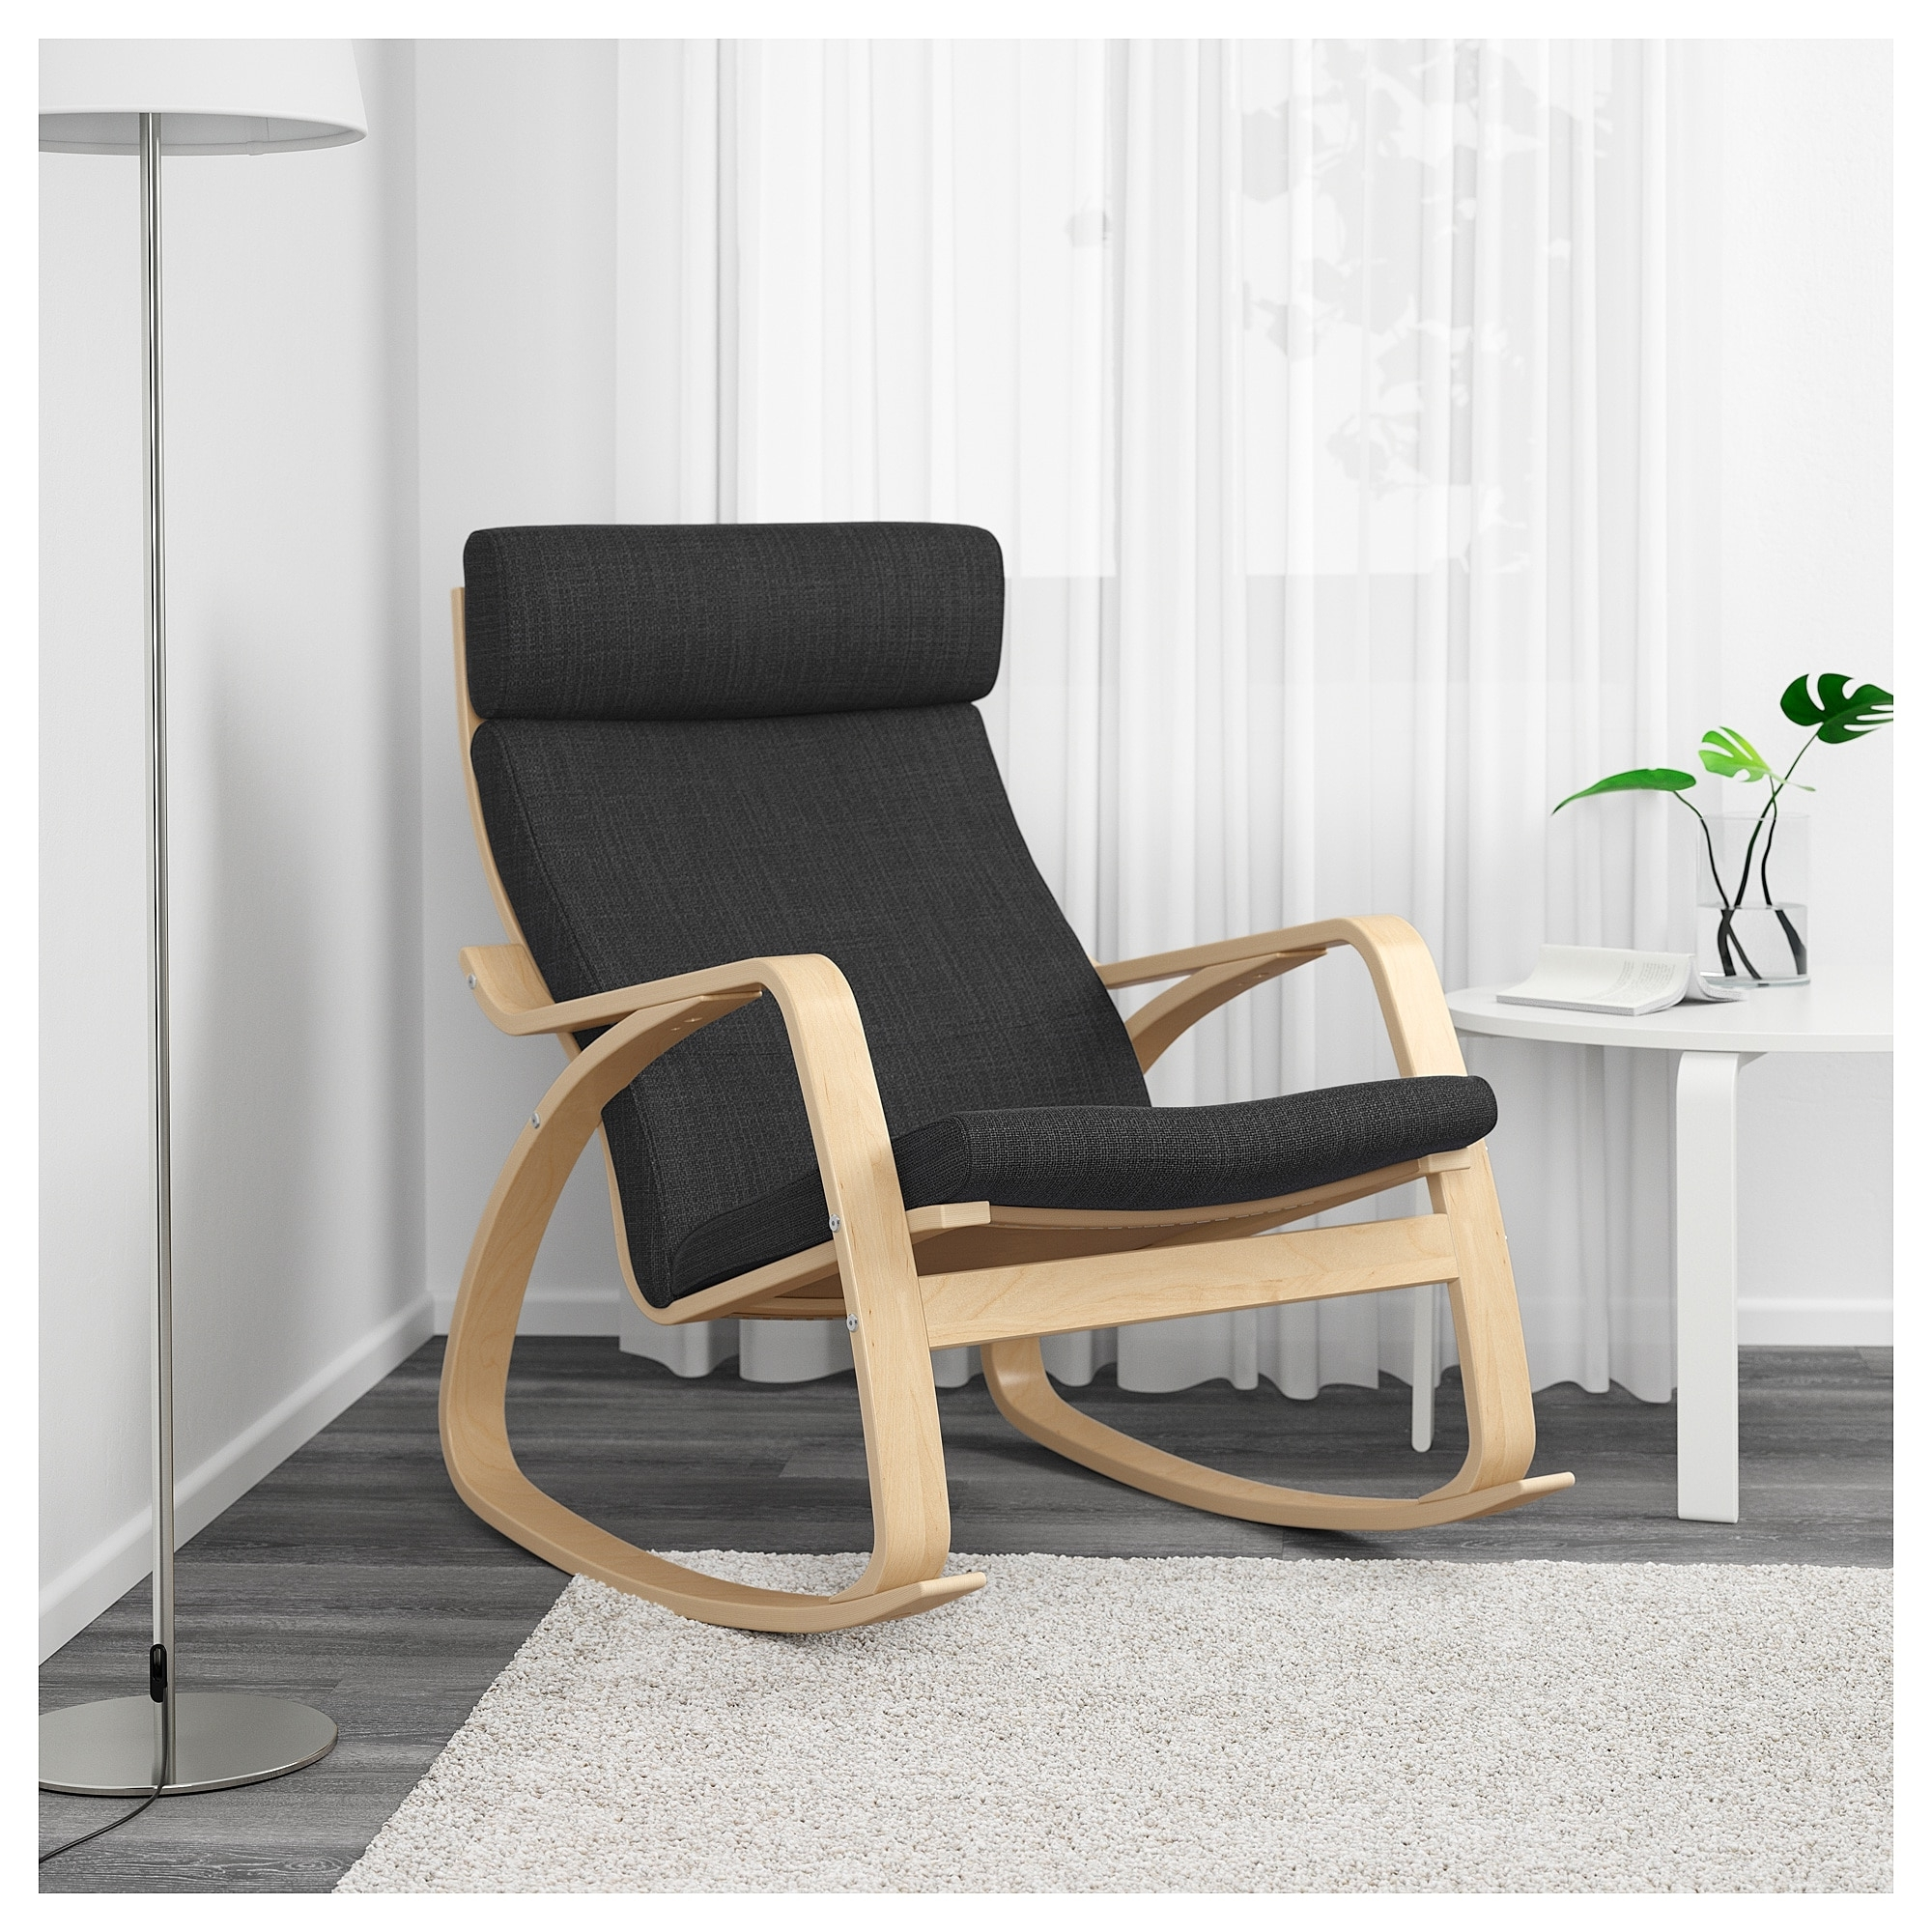 Ikea Rocking Chairs Throughout Most Recent Poäng Rocking Chair Birch Veneer/hillared Anthracite – Ikea (Gallery 5 of 20)